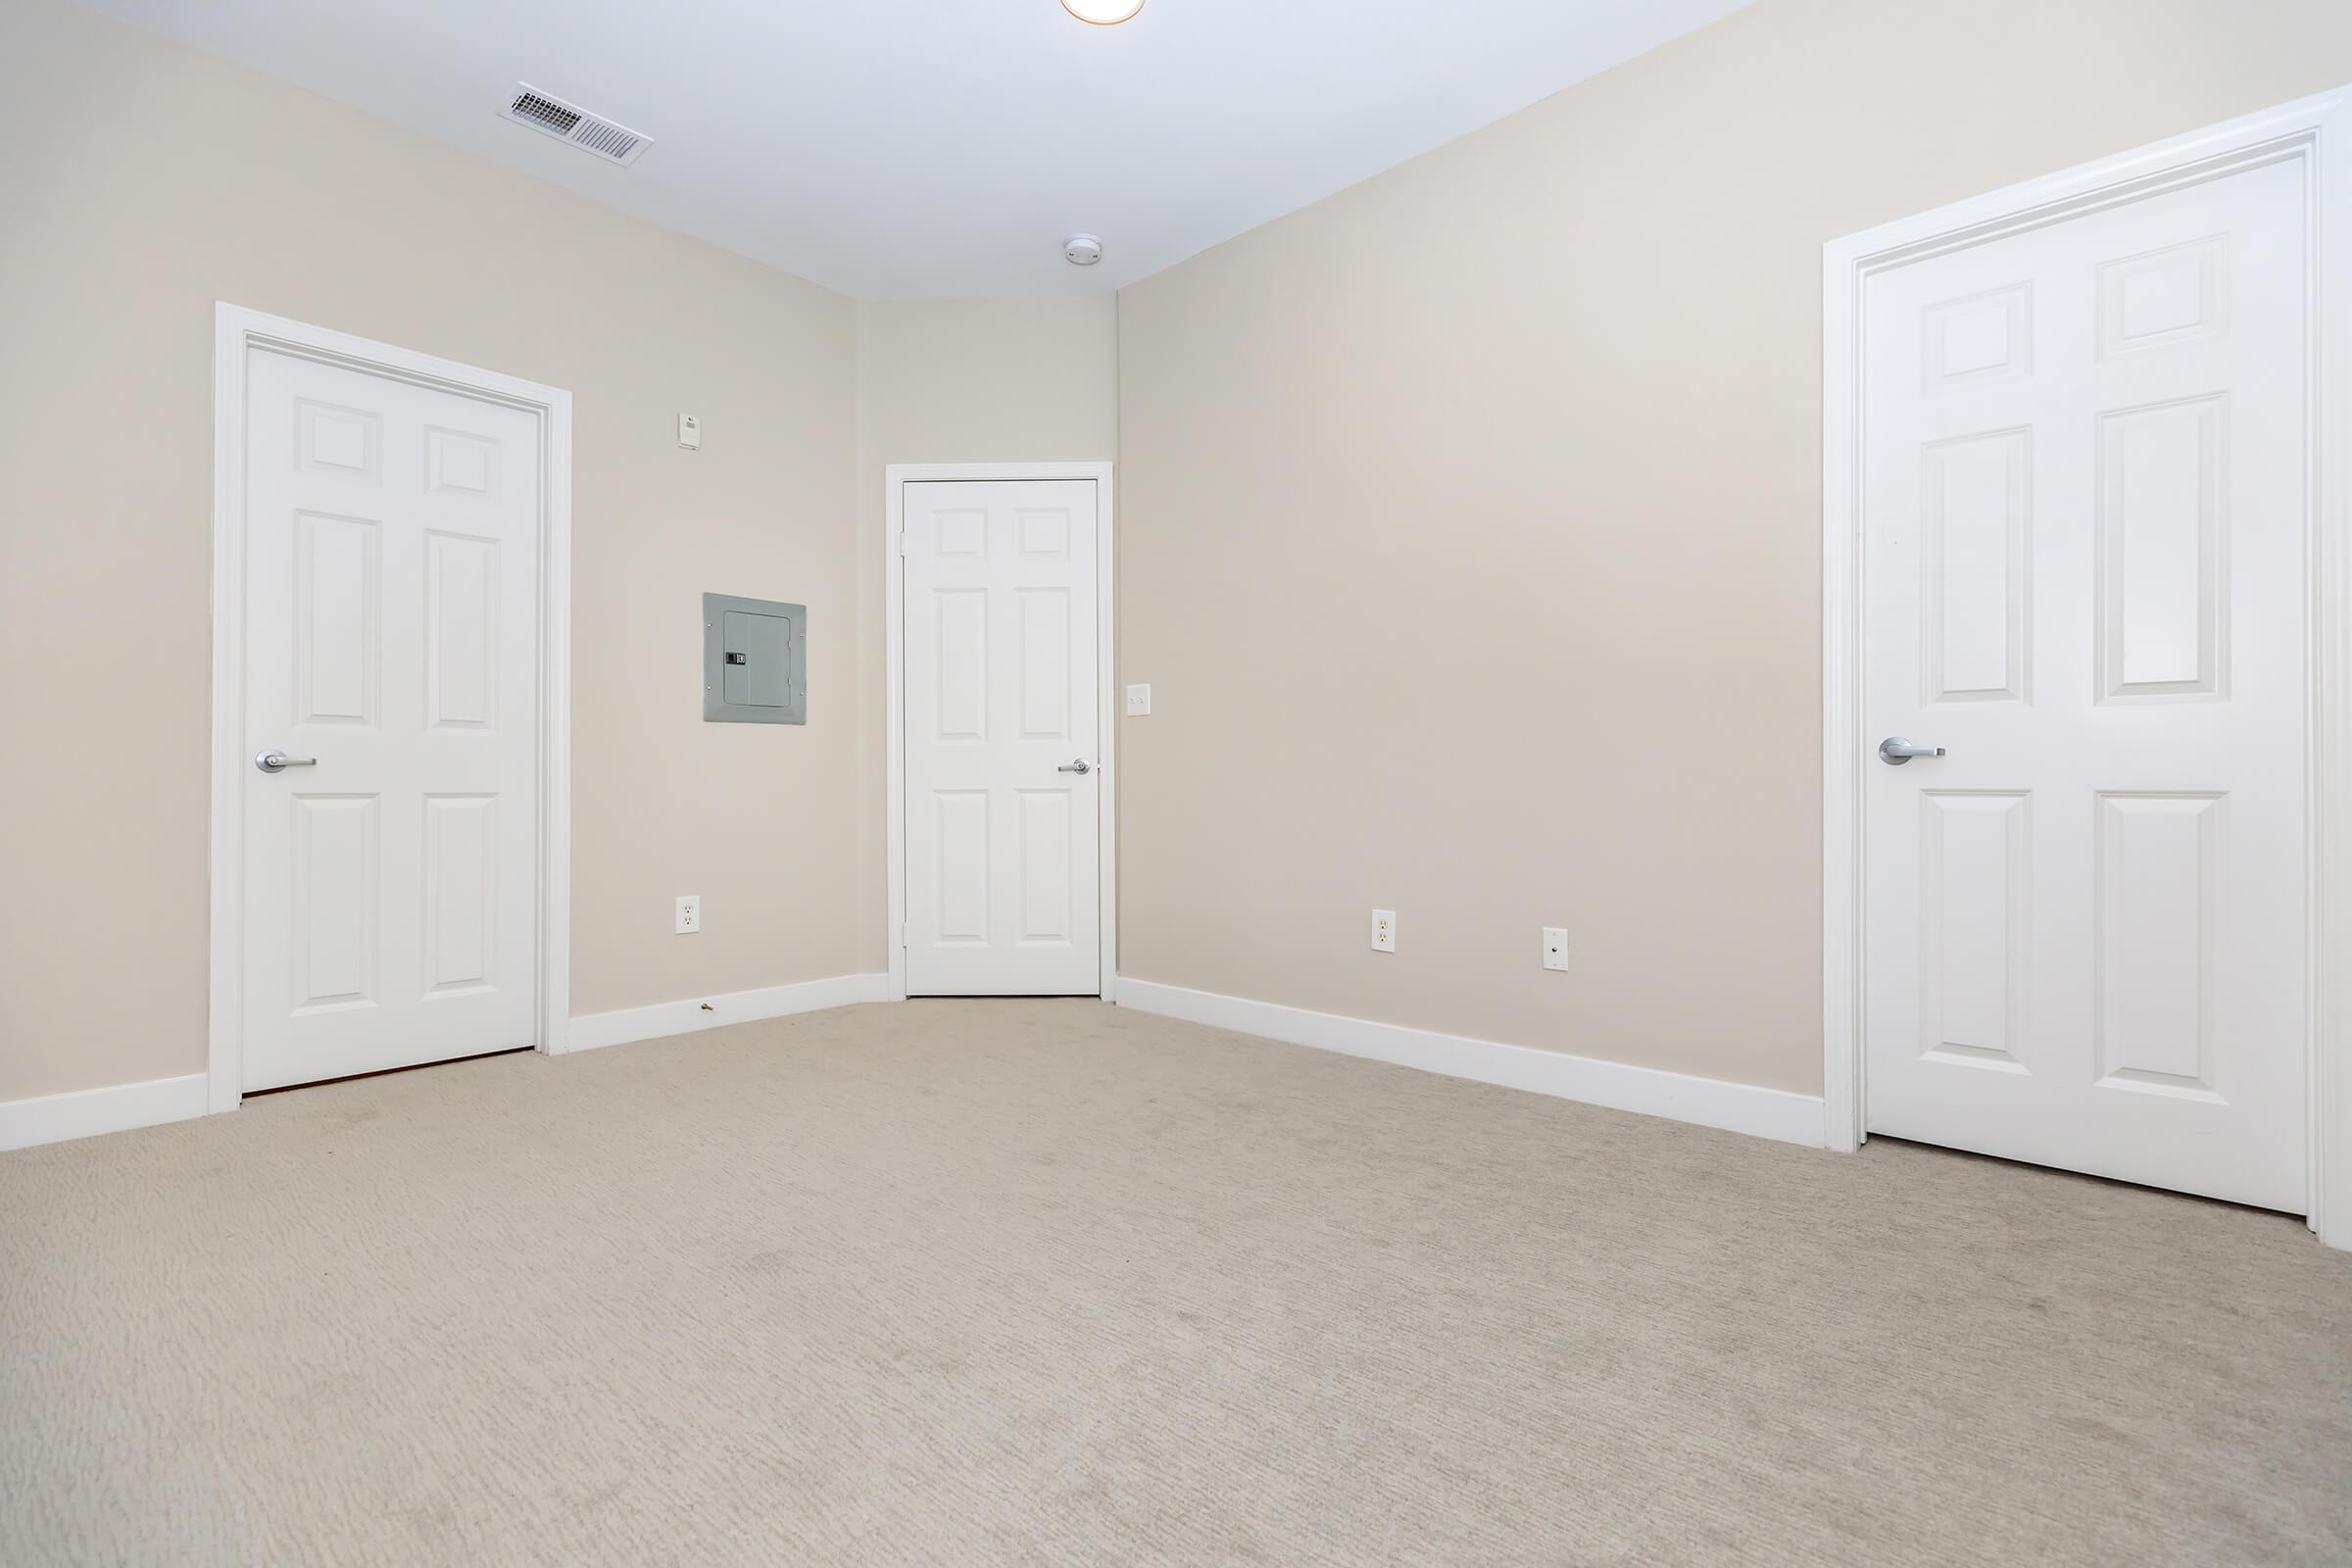 Vacant bedroom with closed doors